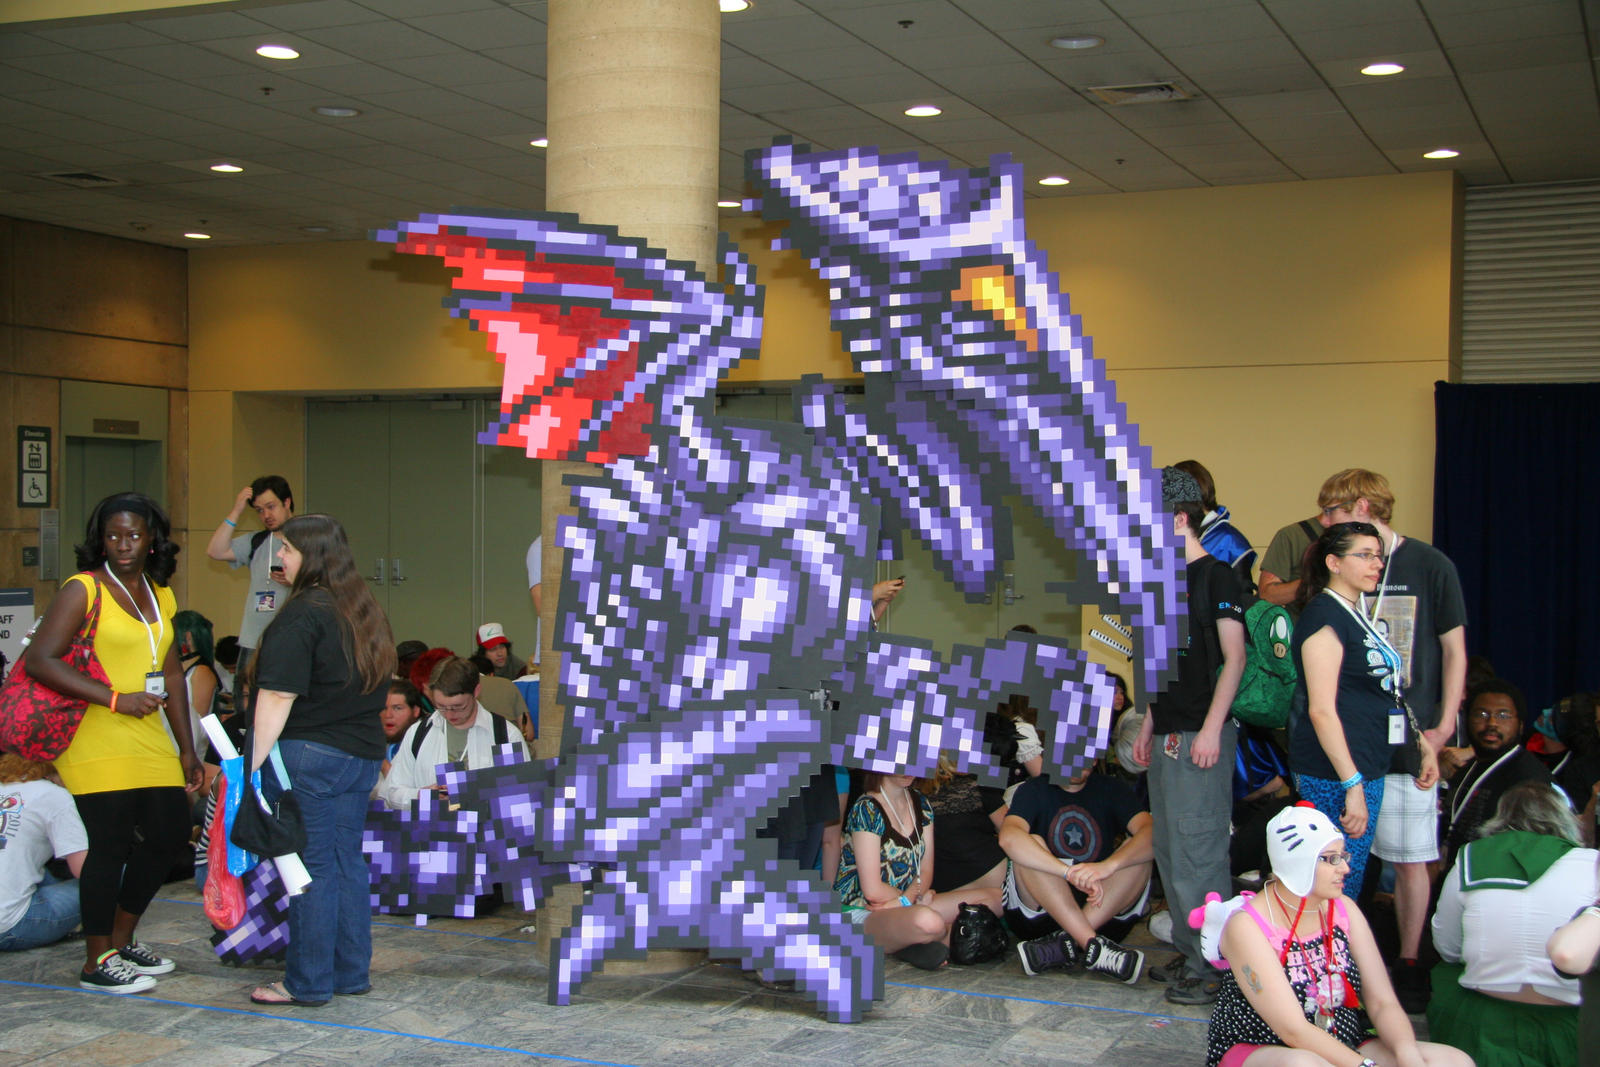 The Purple Dragon in the Room